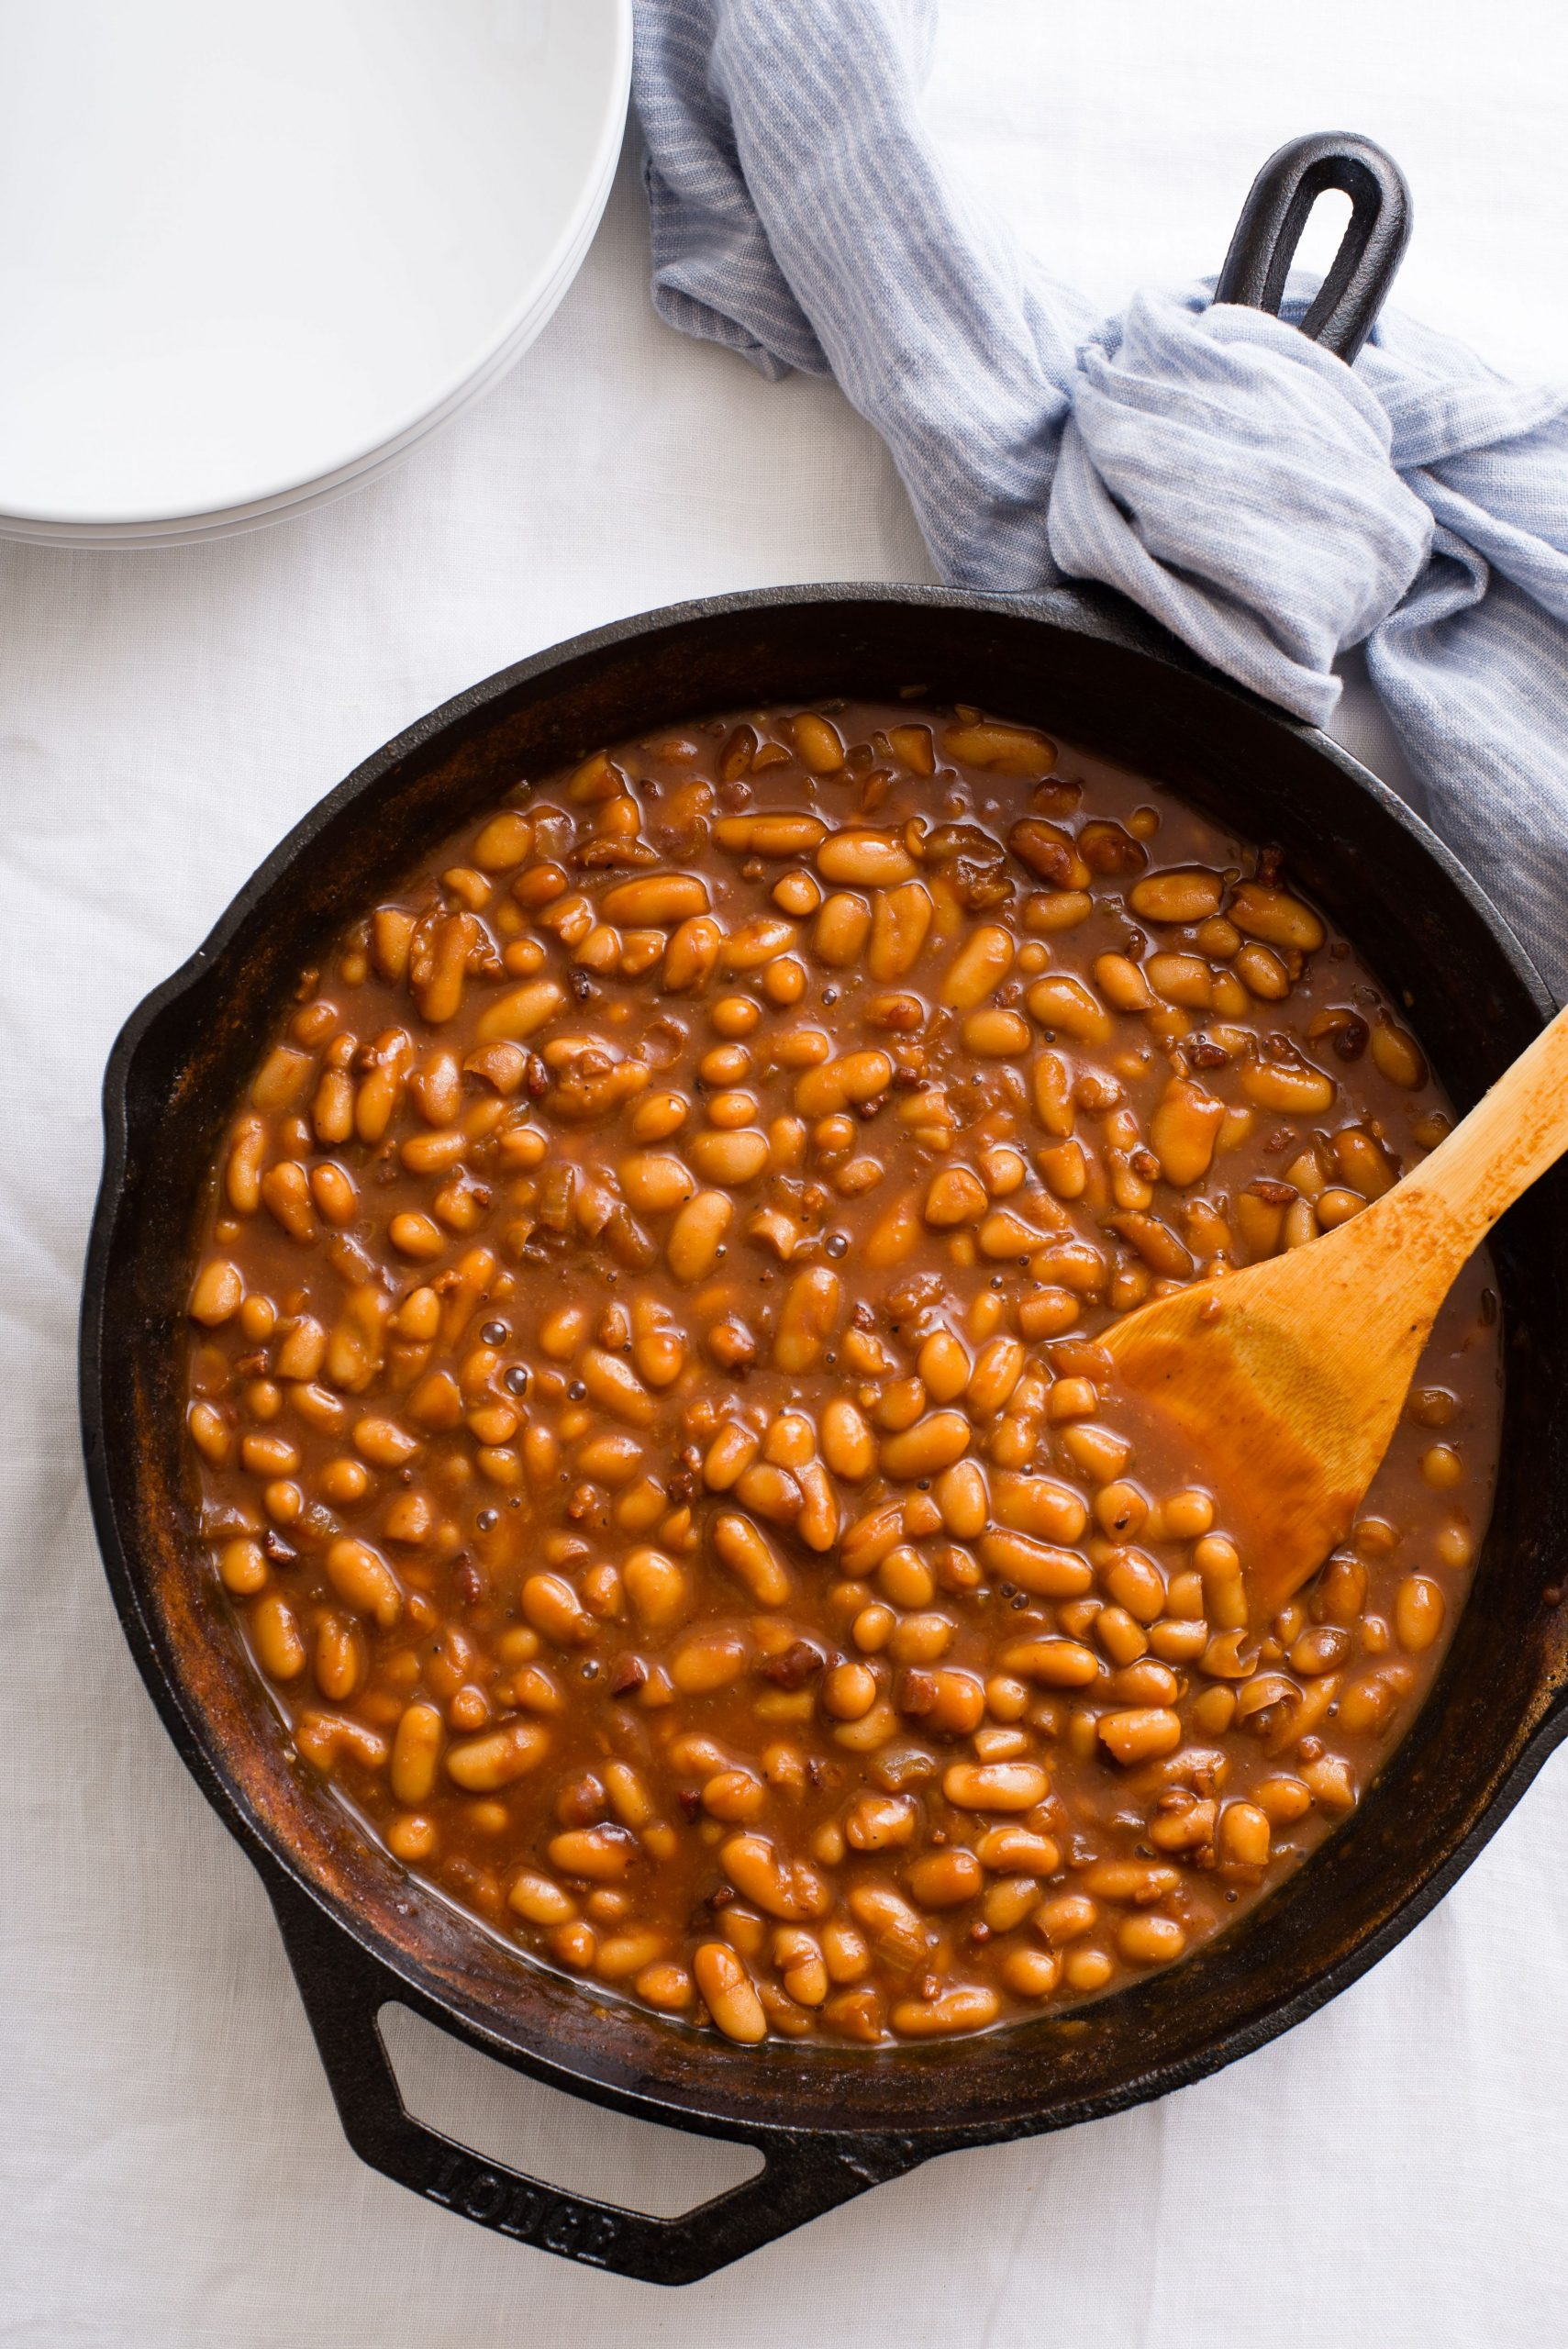 Fast and Fancy Pork and Beans